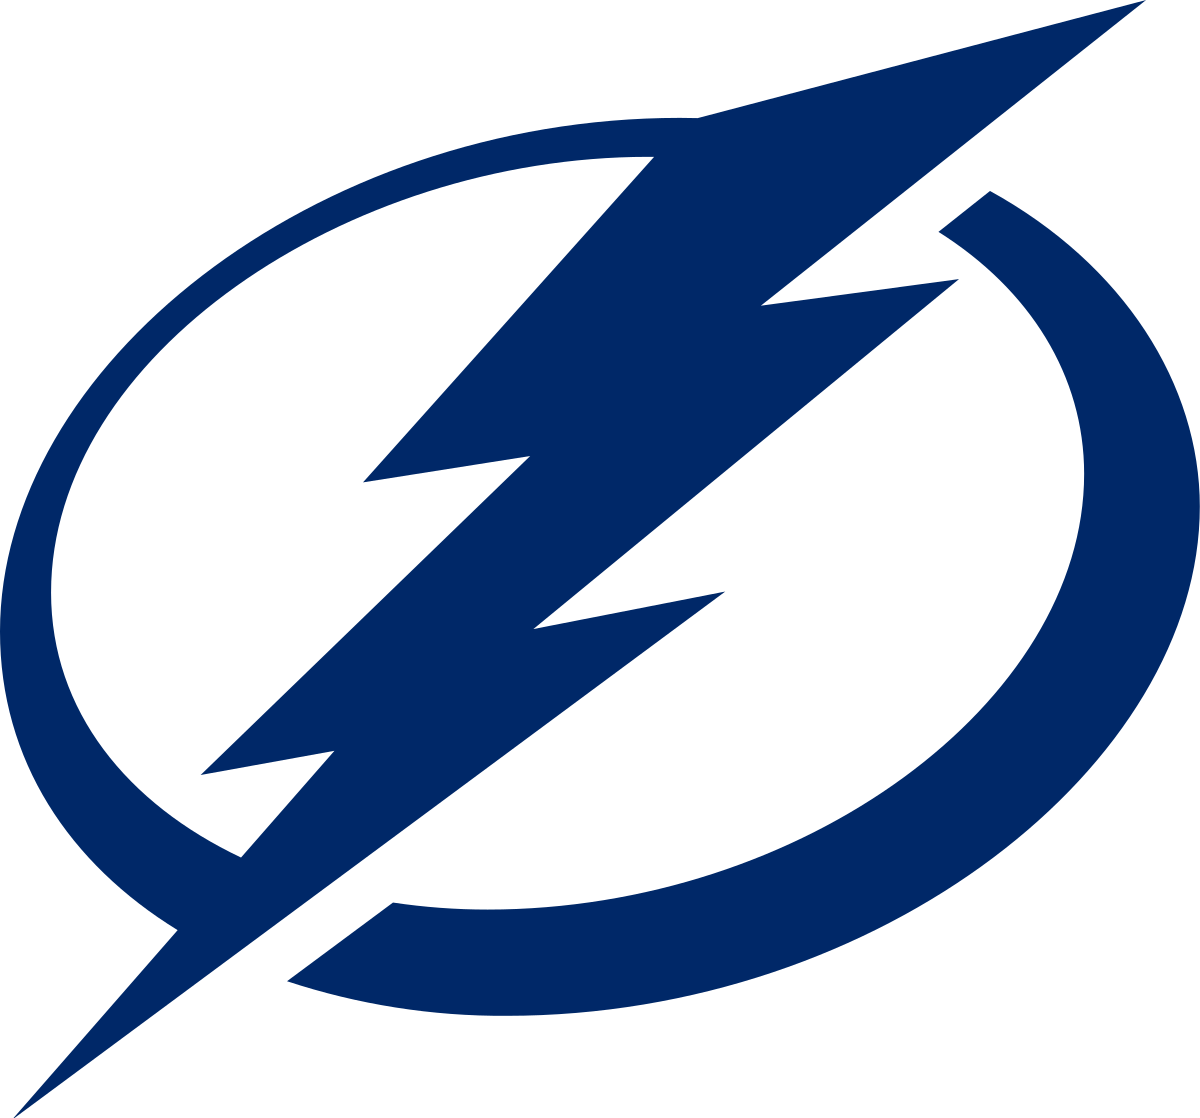 Power rangers lightning bolt png. Tampa bay wikipedia